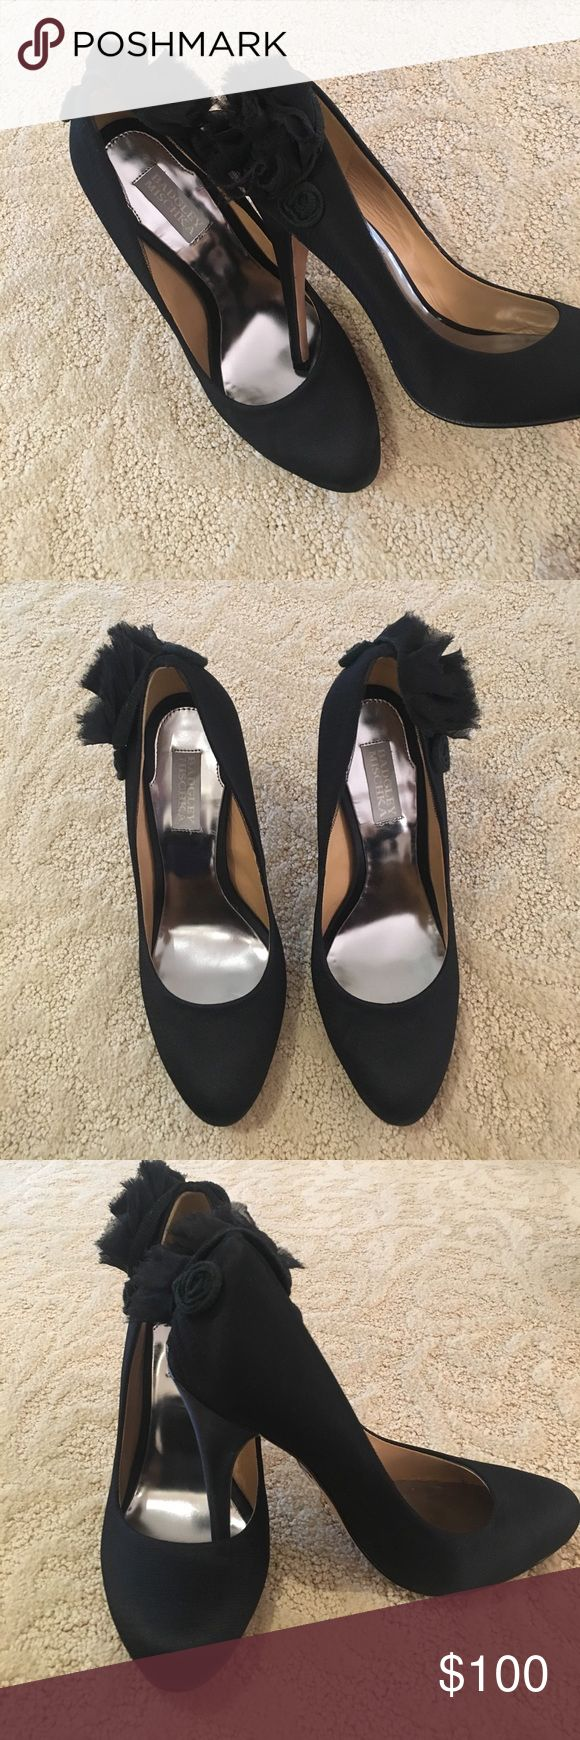 Badgley Mischka Black Heels These Badgley Mischka heels are in perfect condition!! They are sooo cute and are very clean! Badgley Mischka Shoes Heels